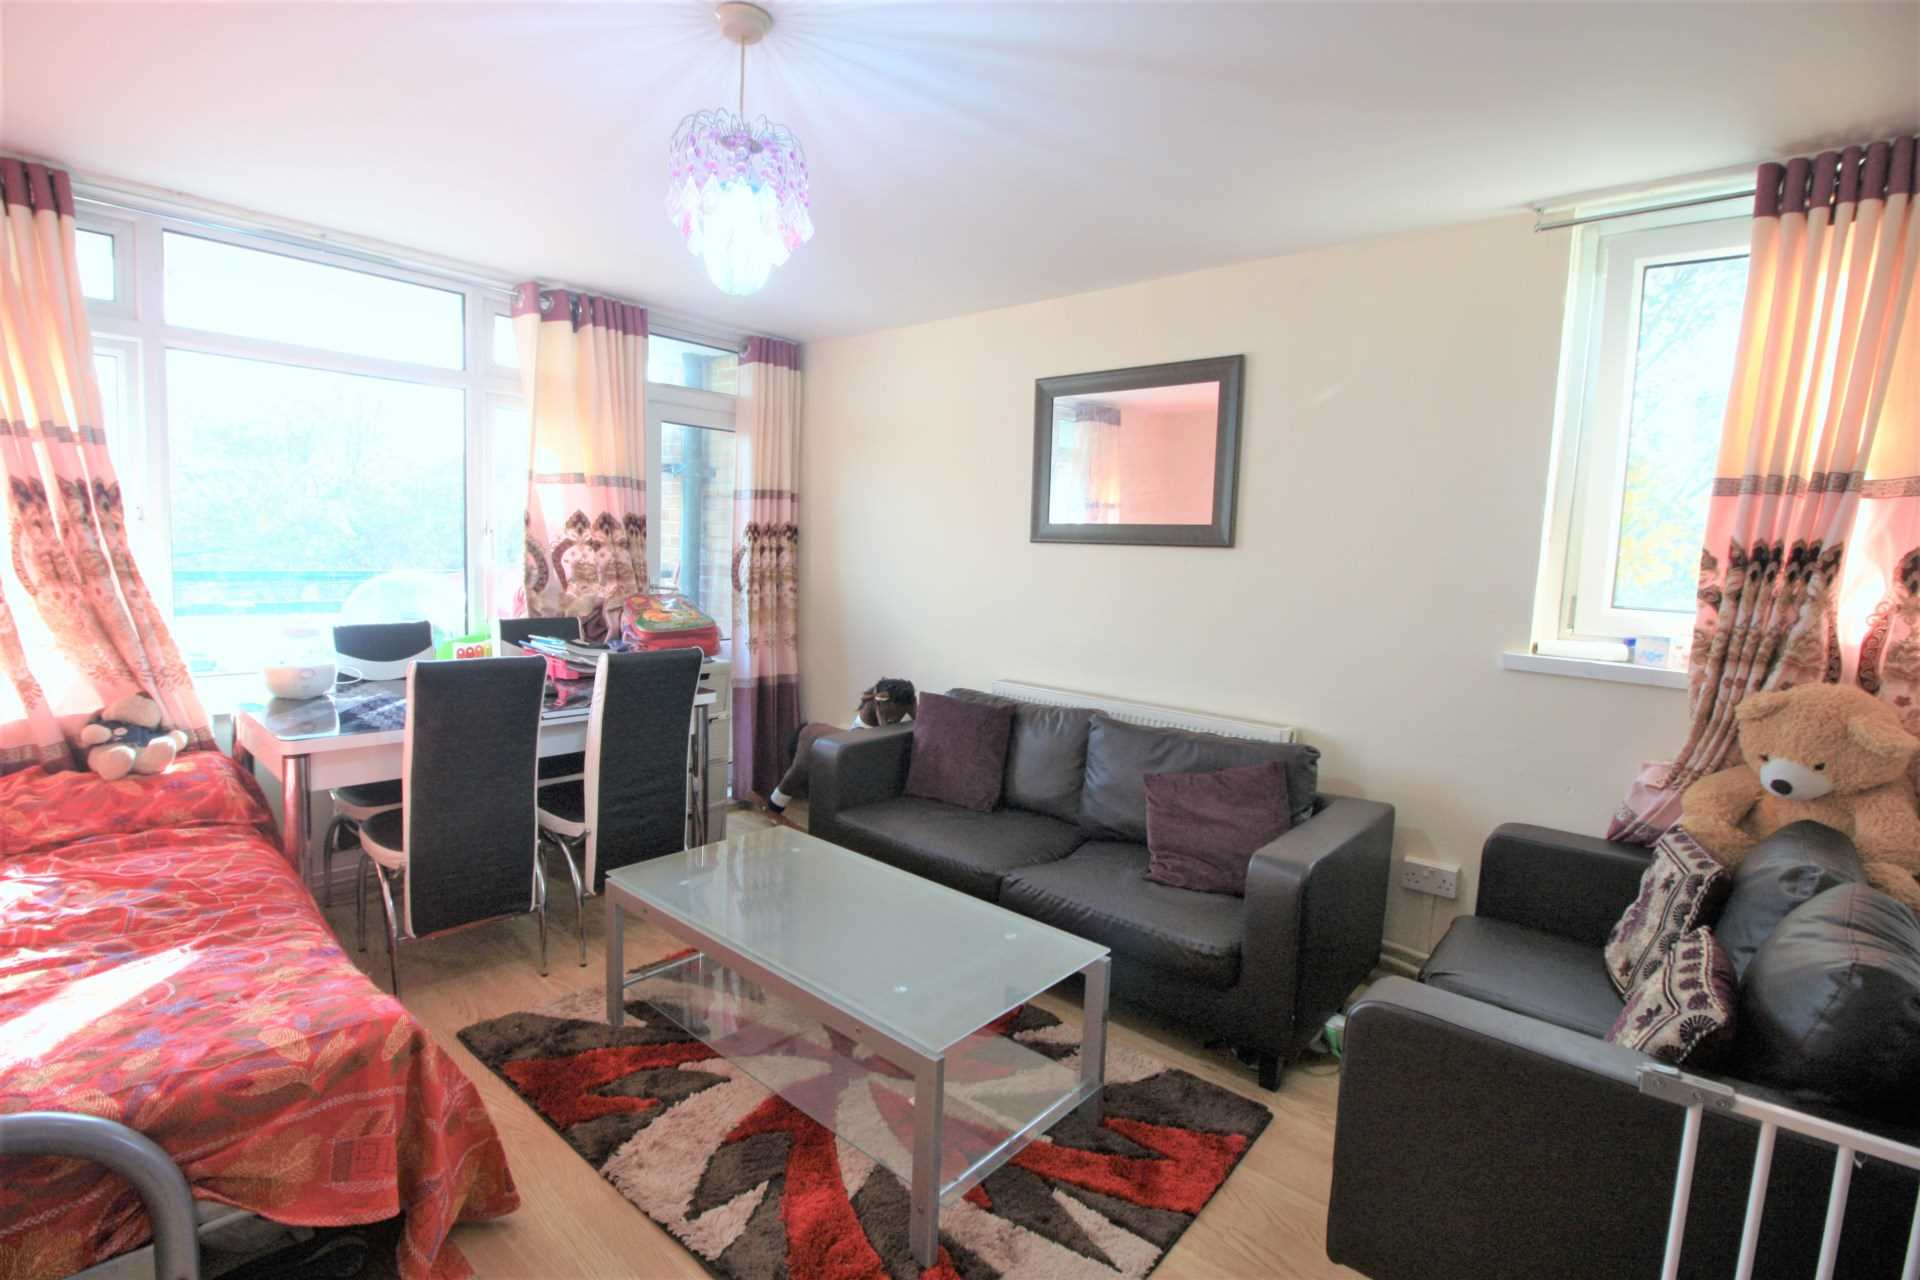 Heigham Road, East Ham, E6, Image 3